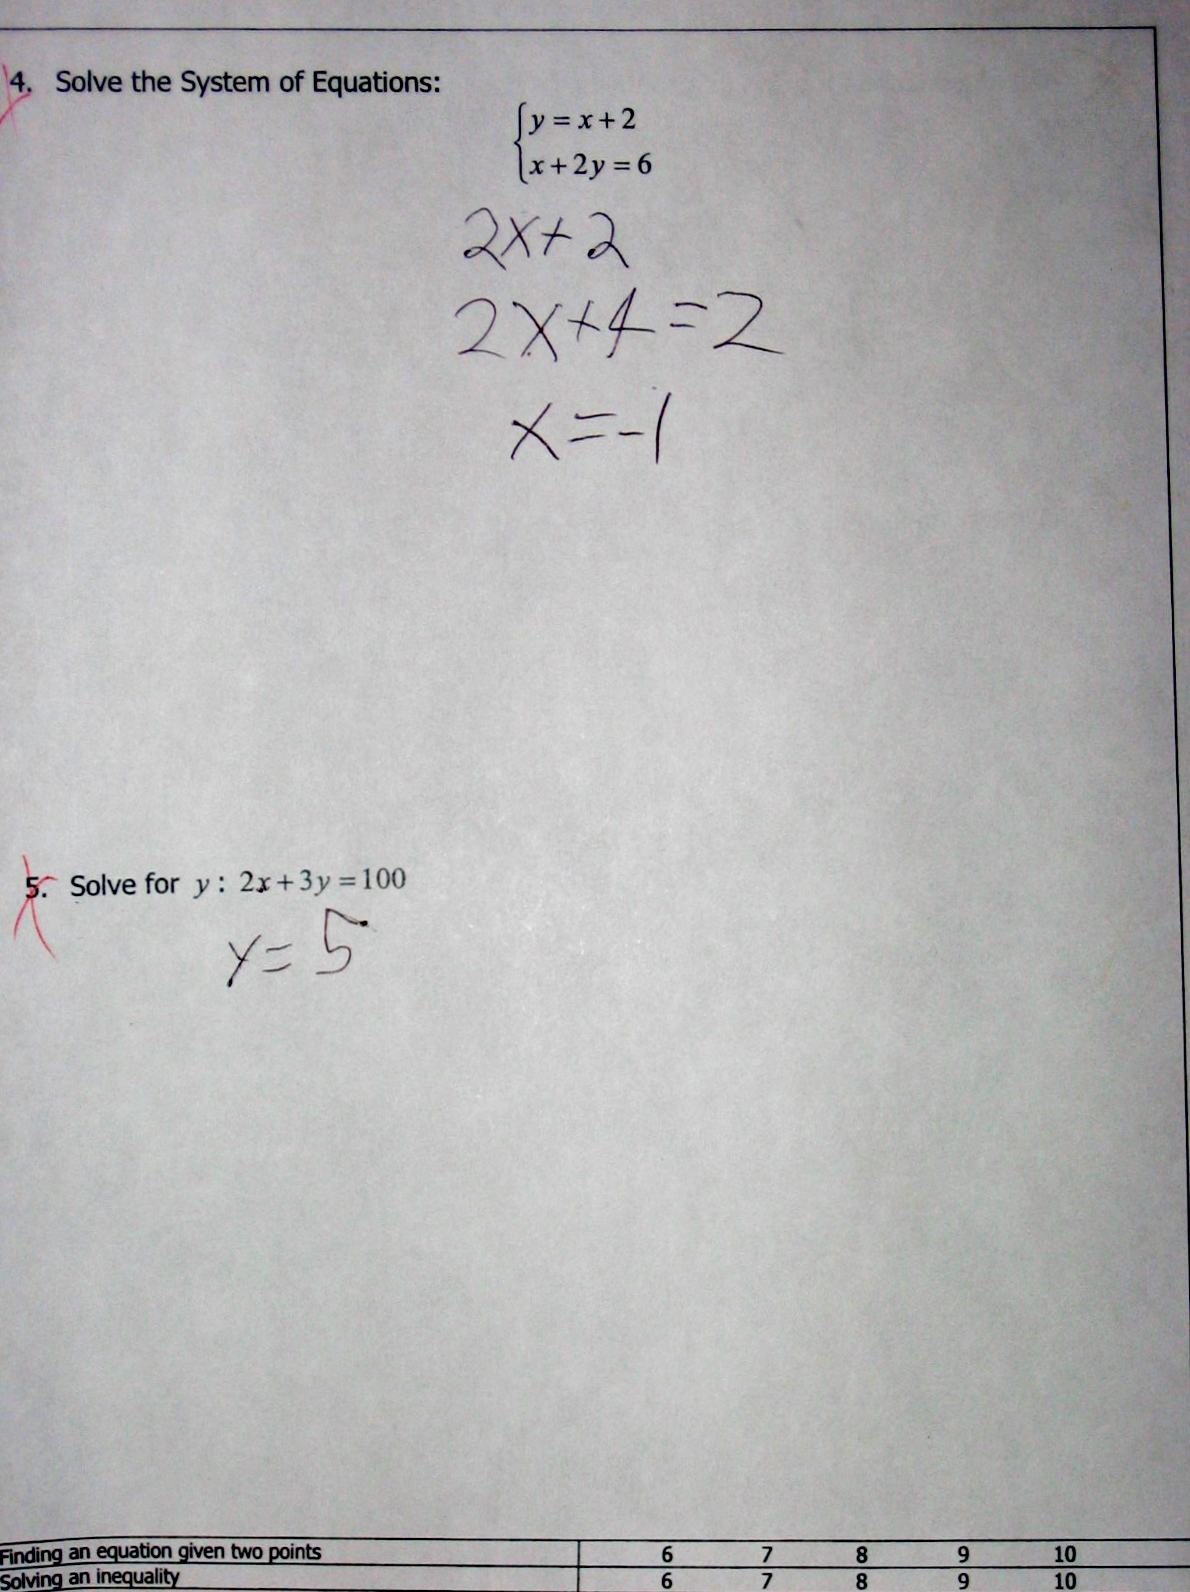 Reasoning with Equations and Inequalities « Math Mistakes